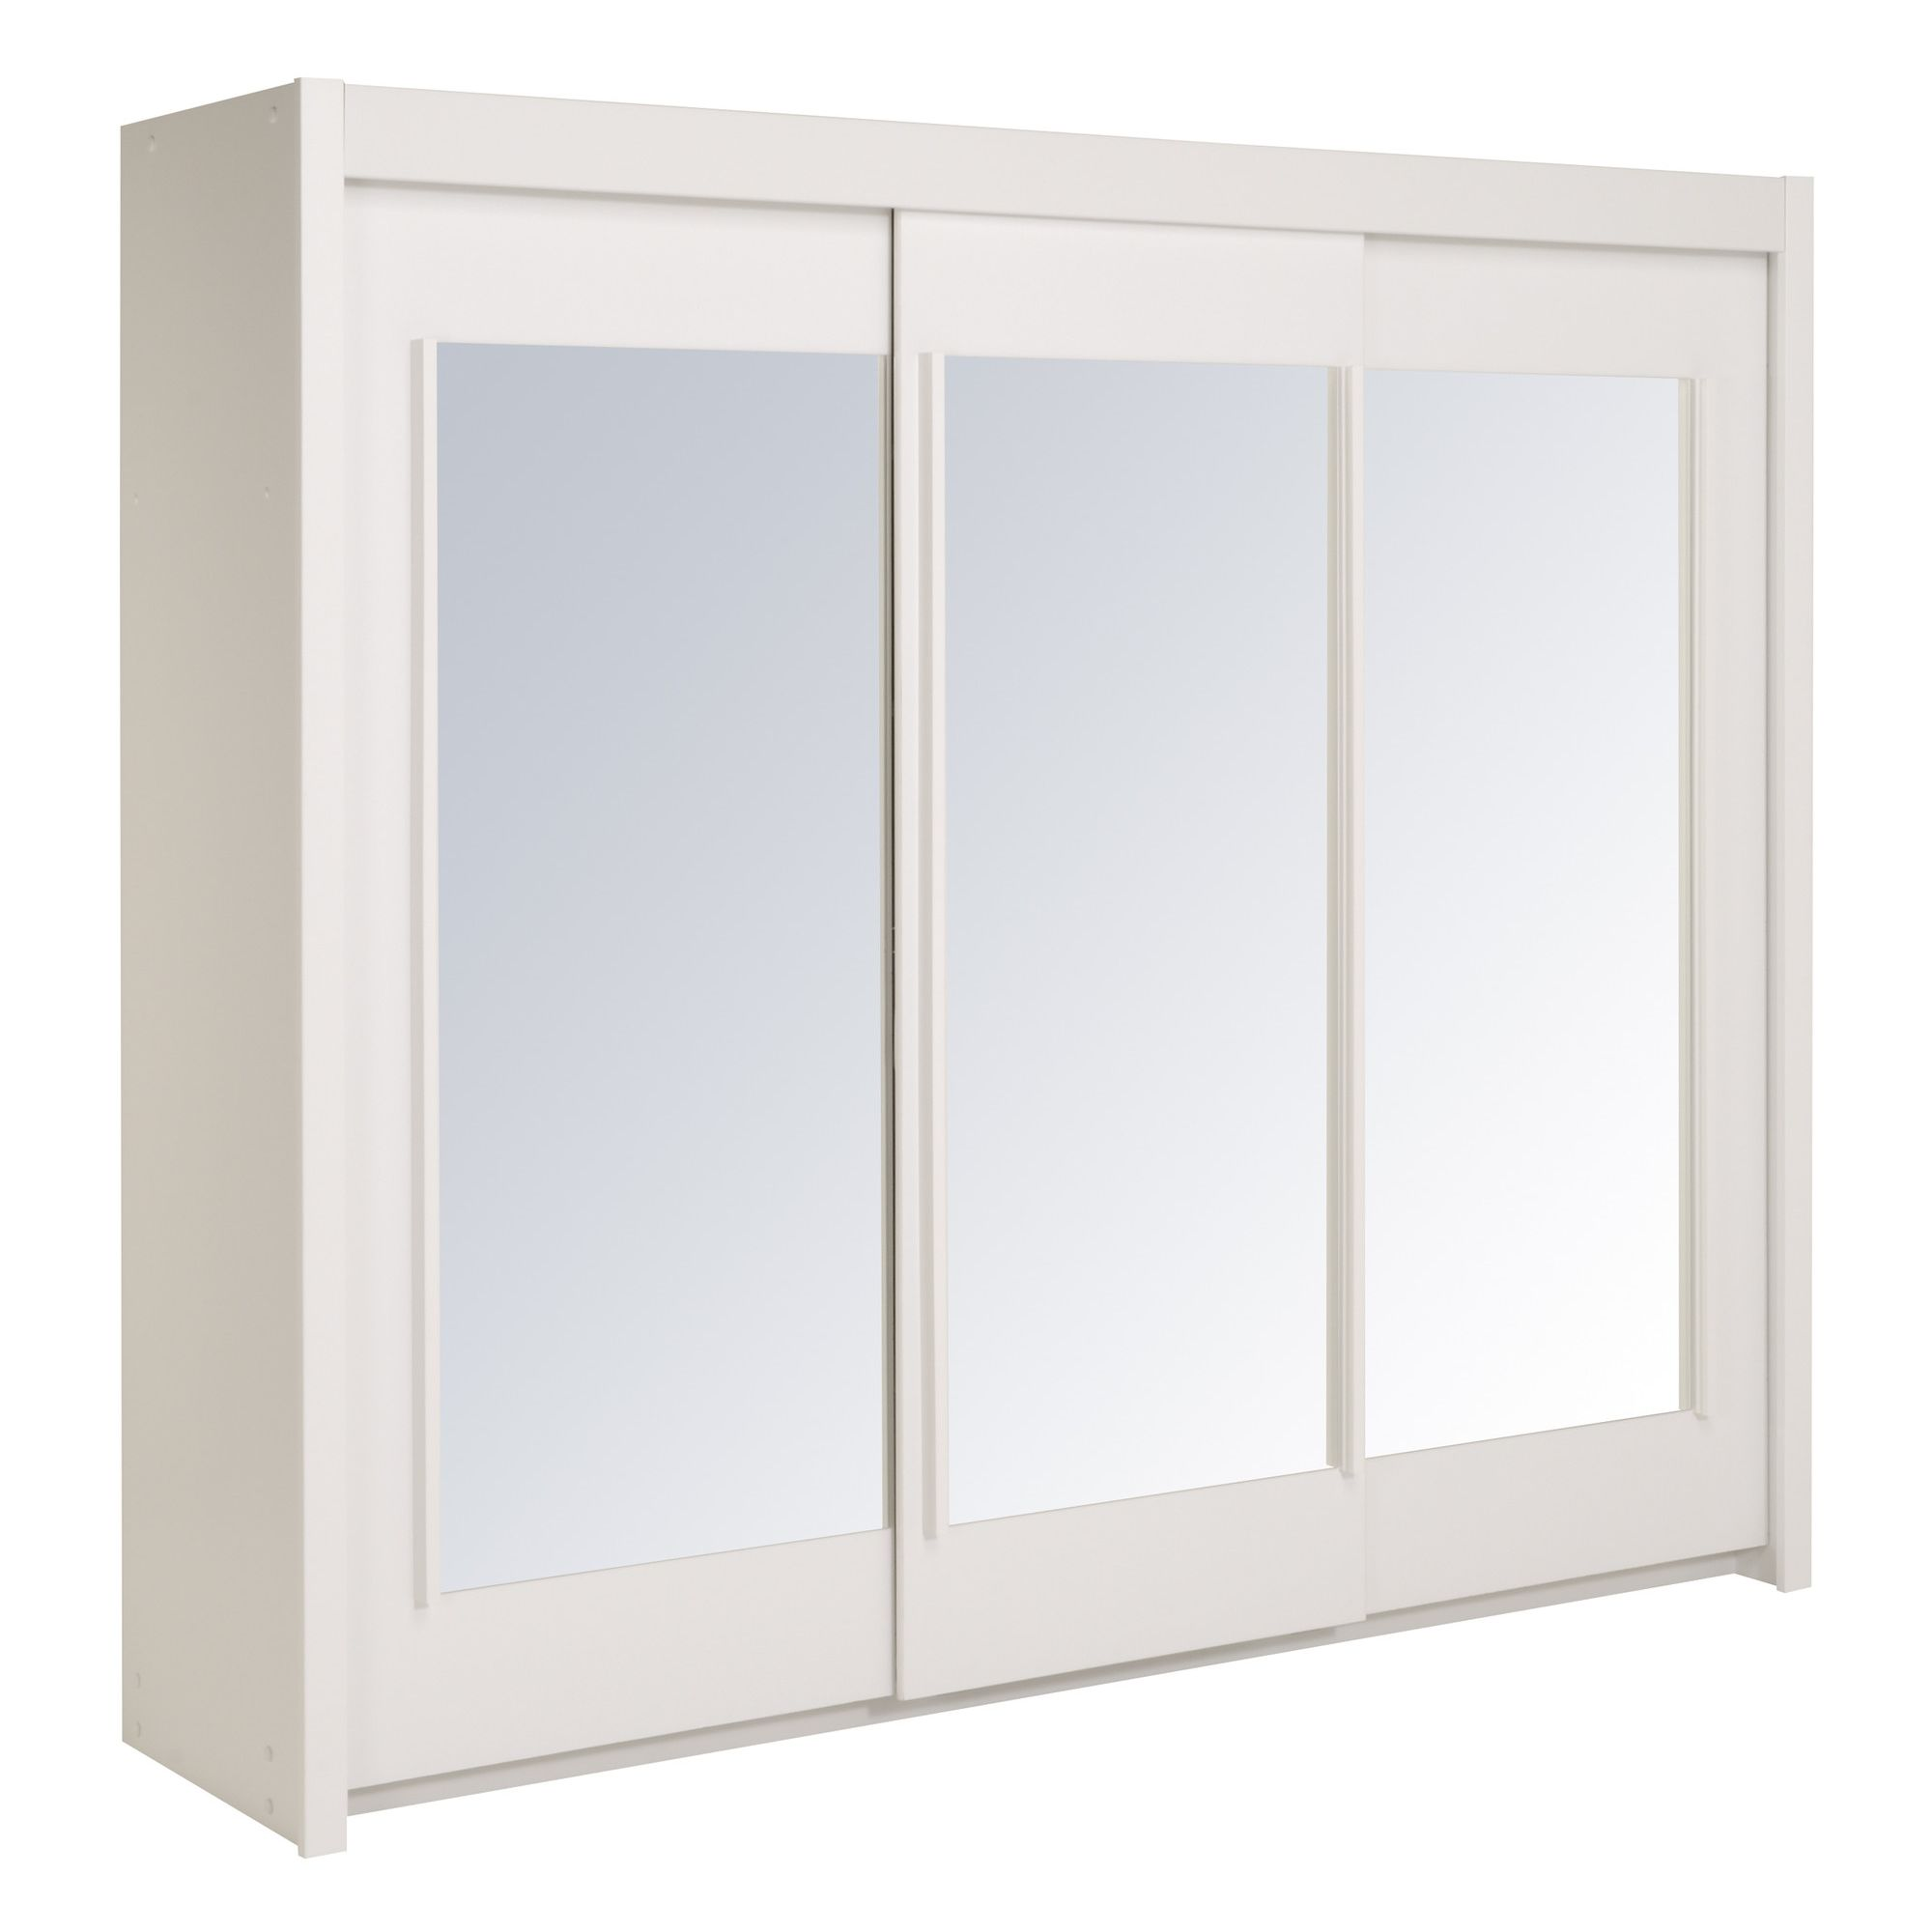 Parisot Essential Wardrobe with 3 Sliding Doors - White Megeve at Tesco Direct